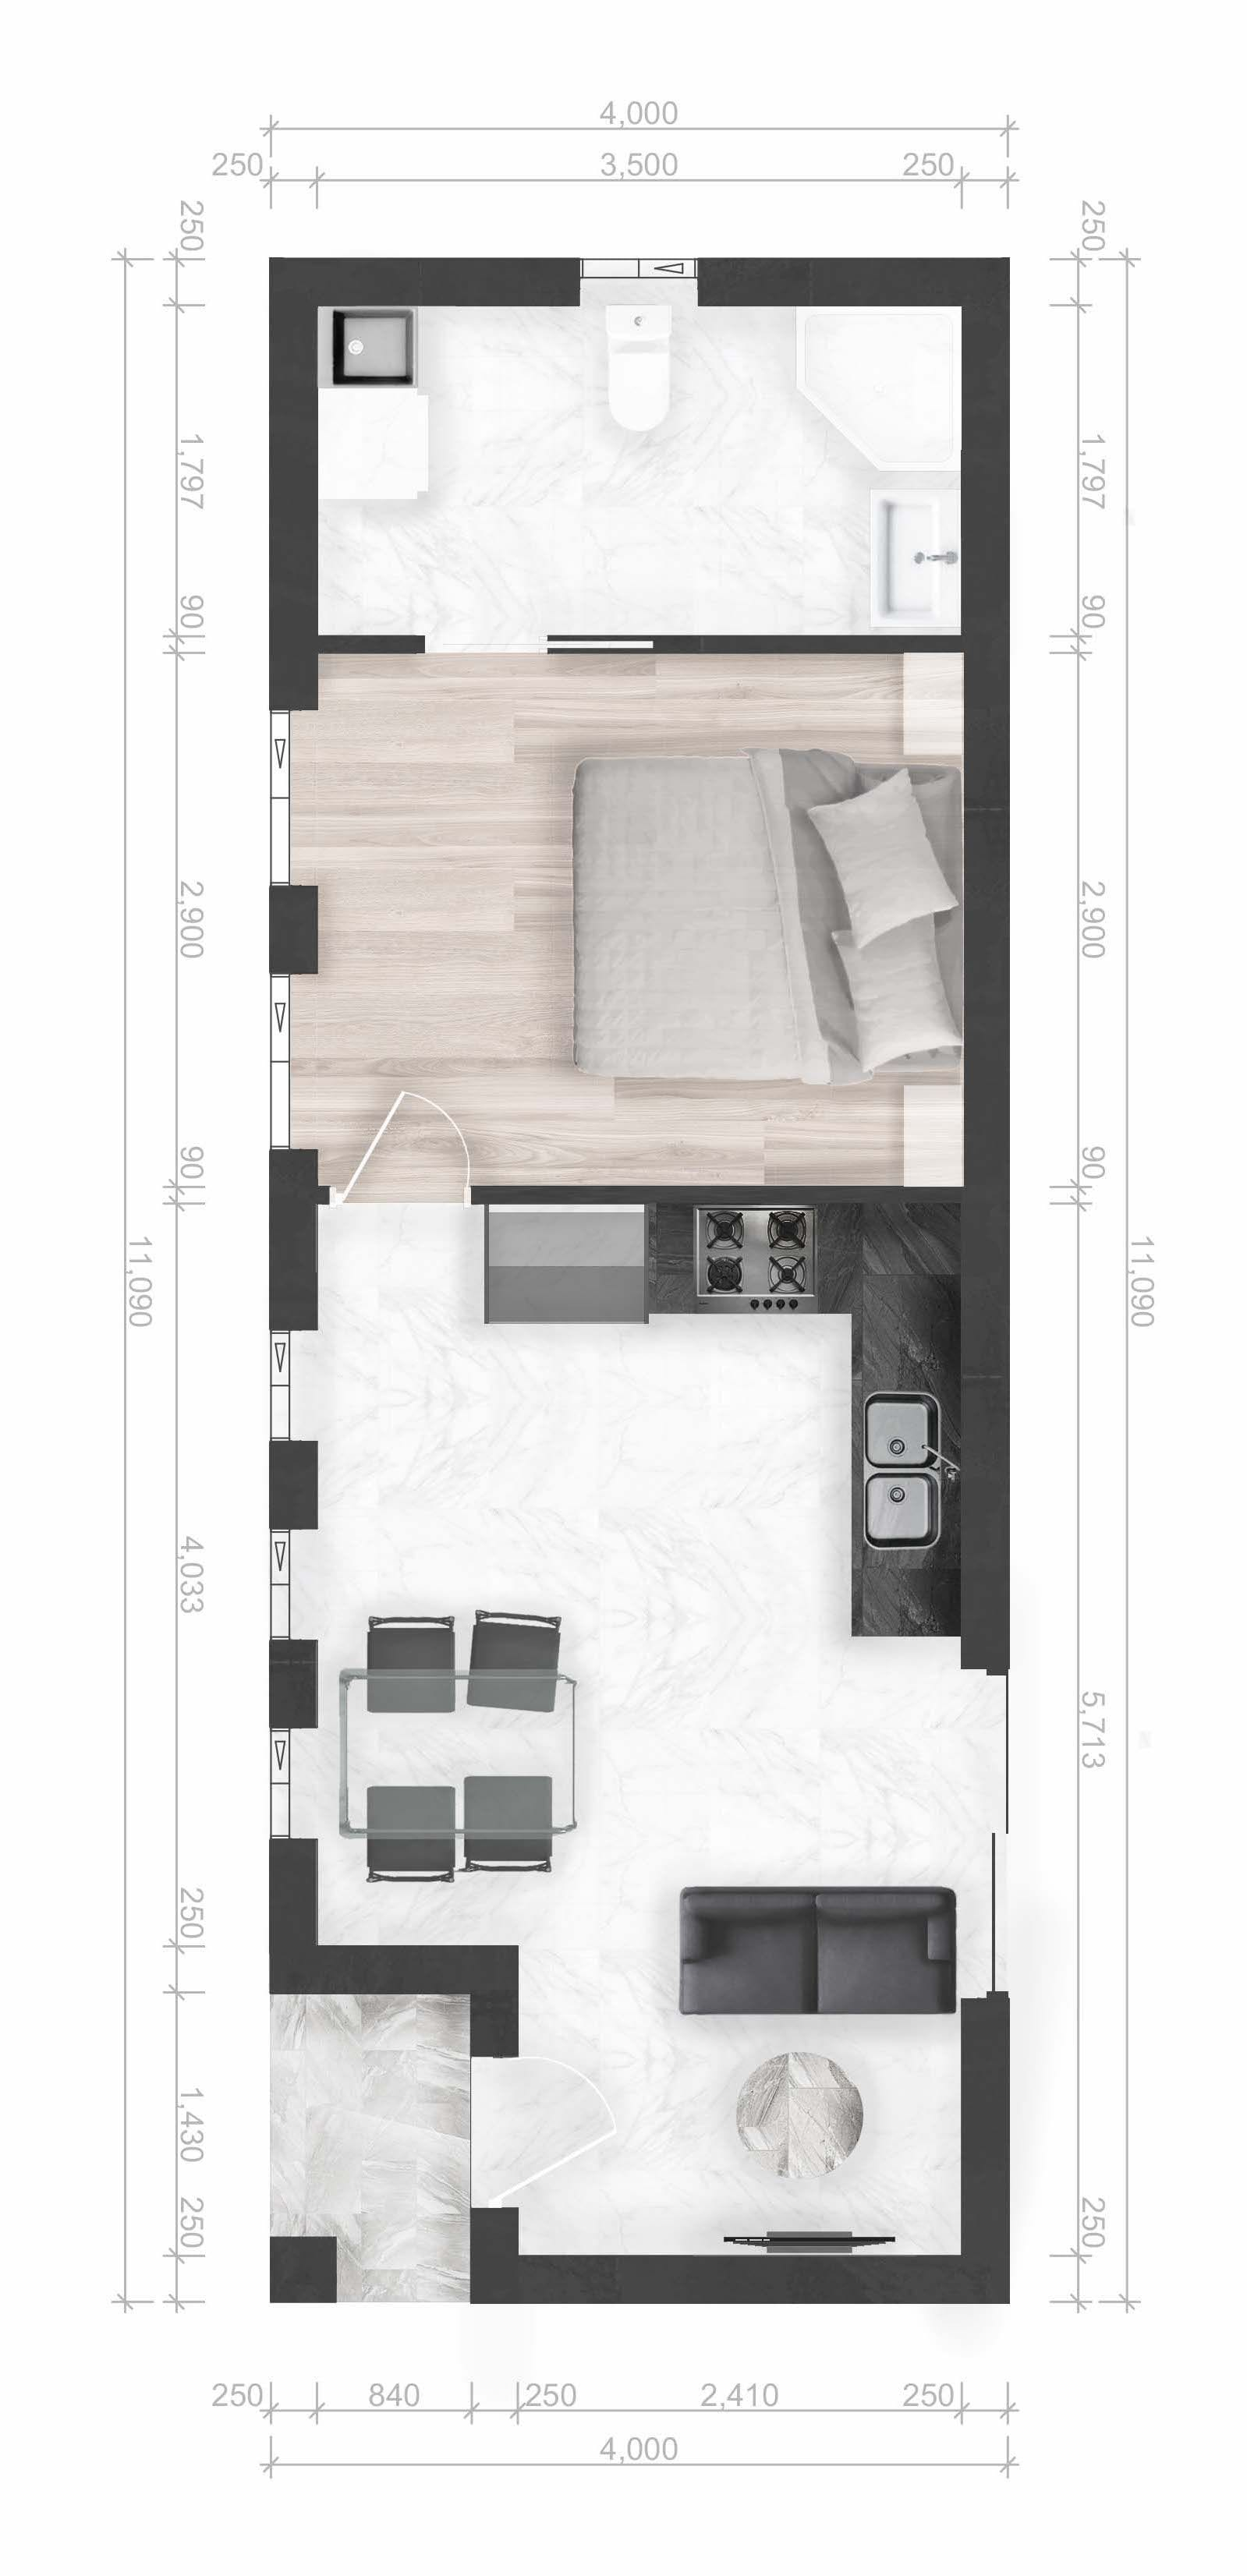 1 Bedroom Cabin Floor Plans